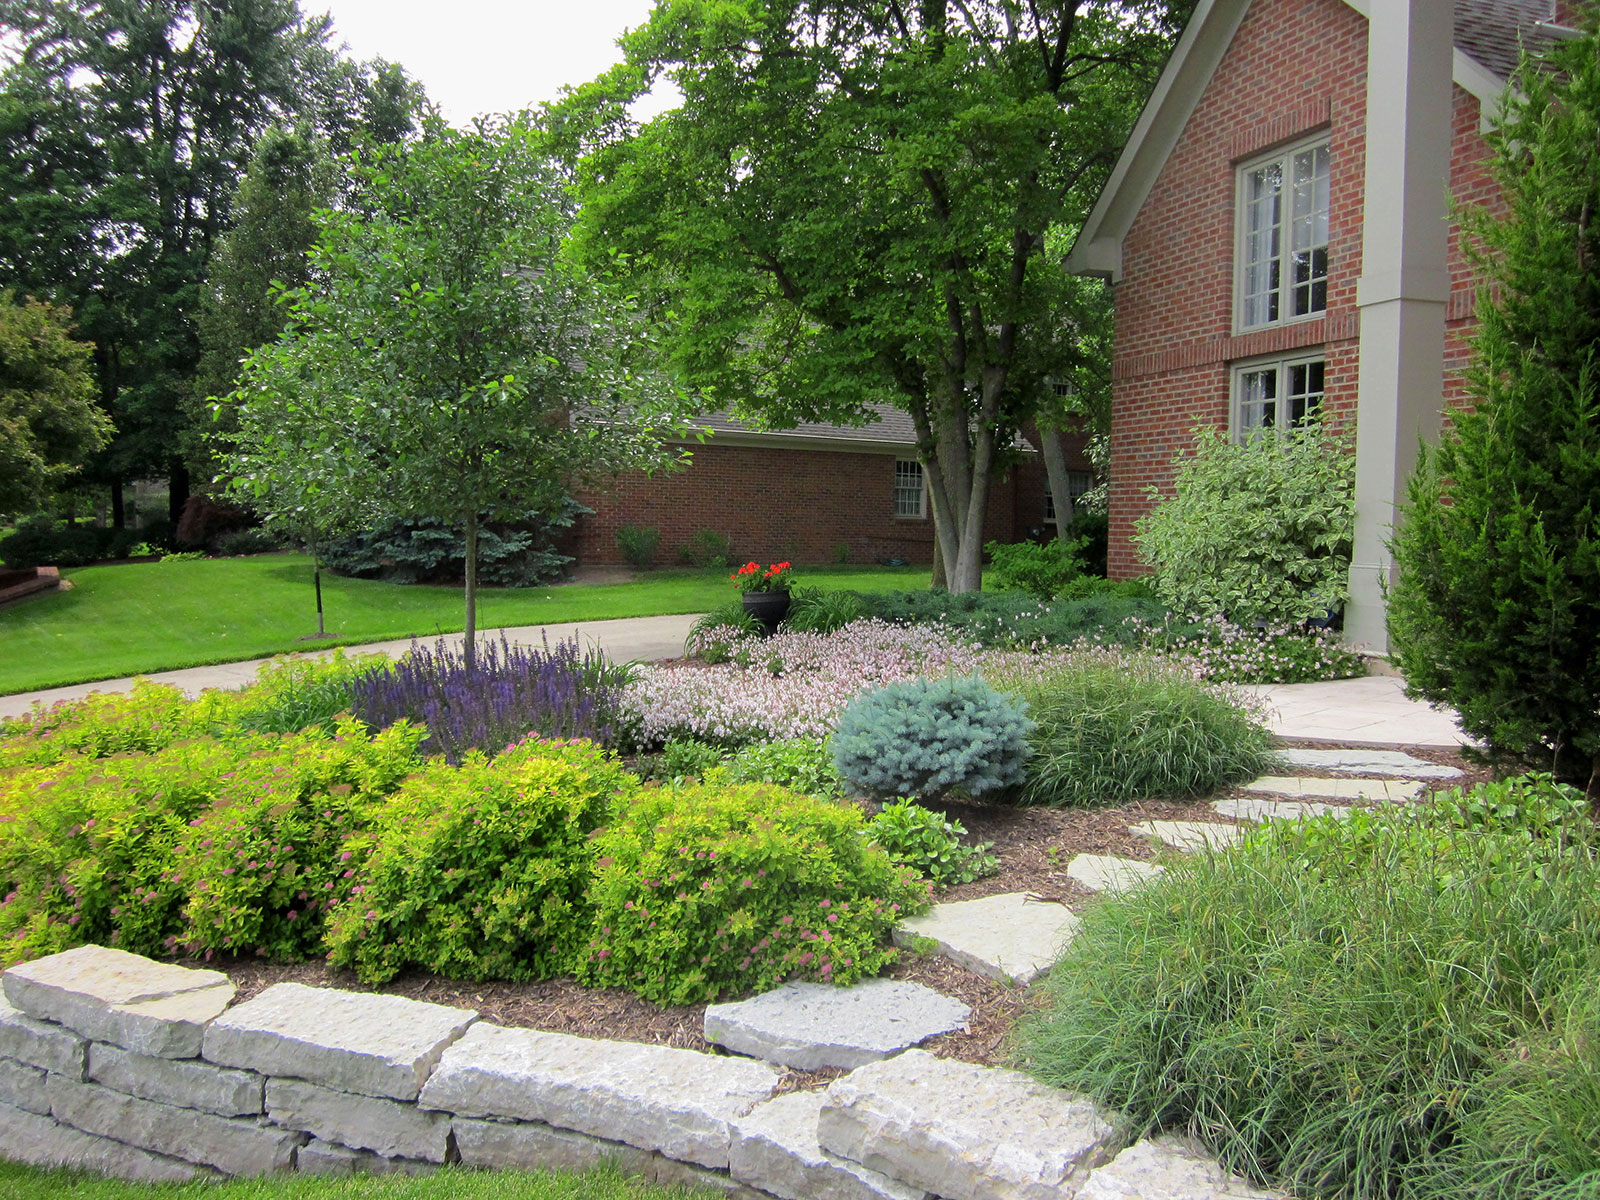 Form water garden with oxygenating plants and adjacent patio seating